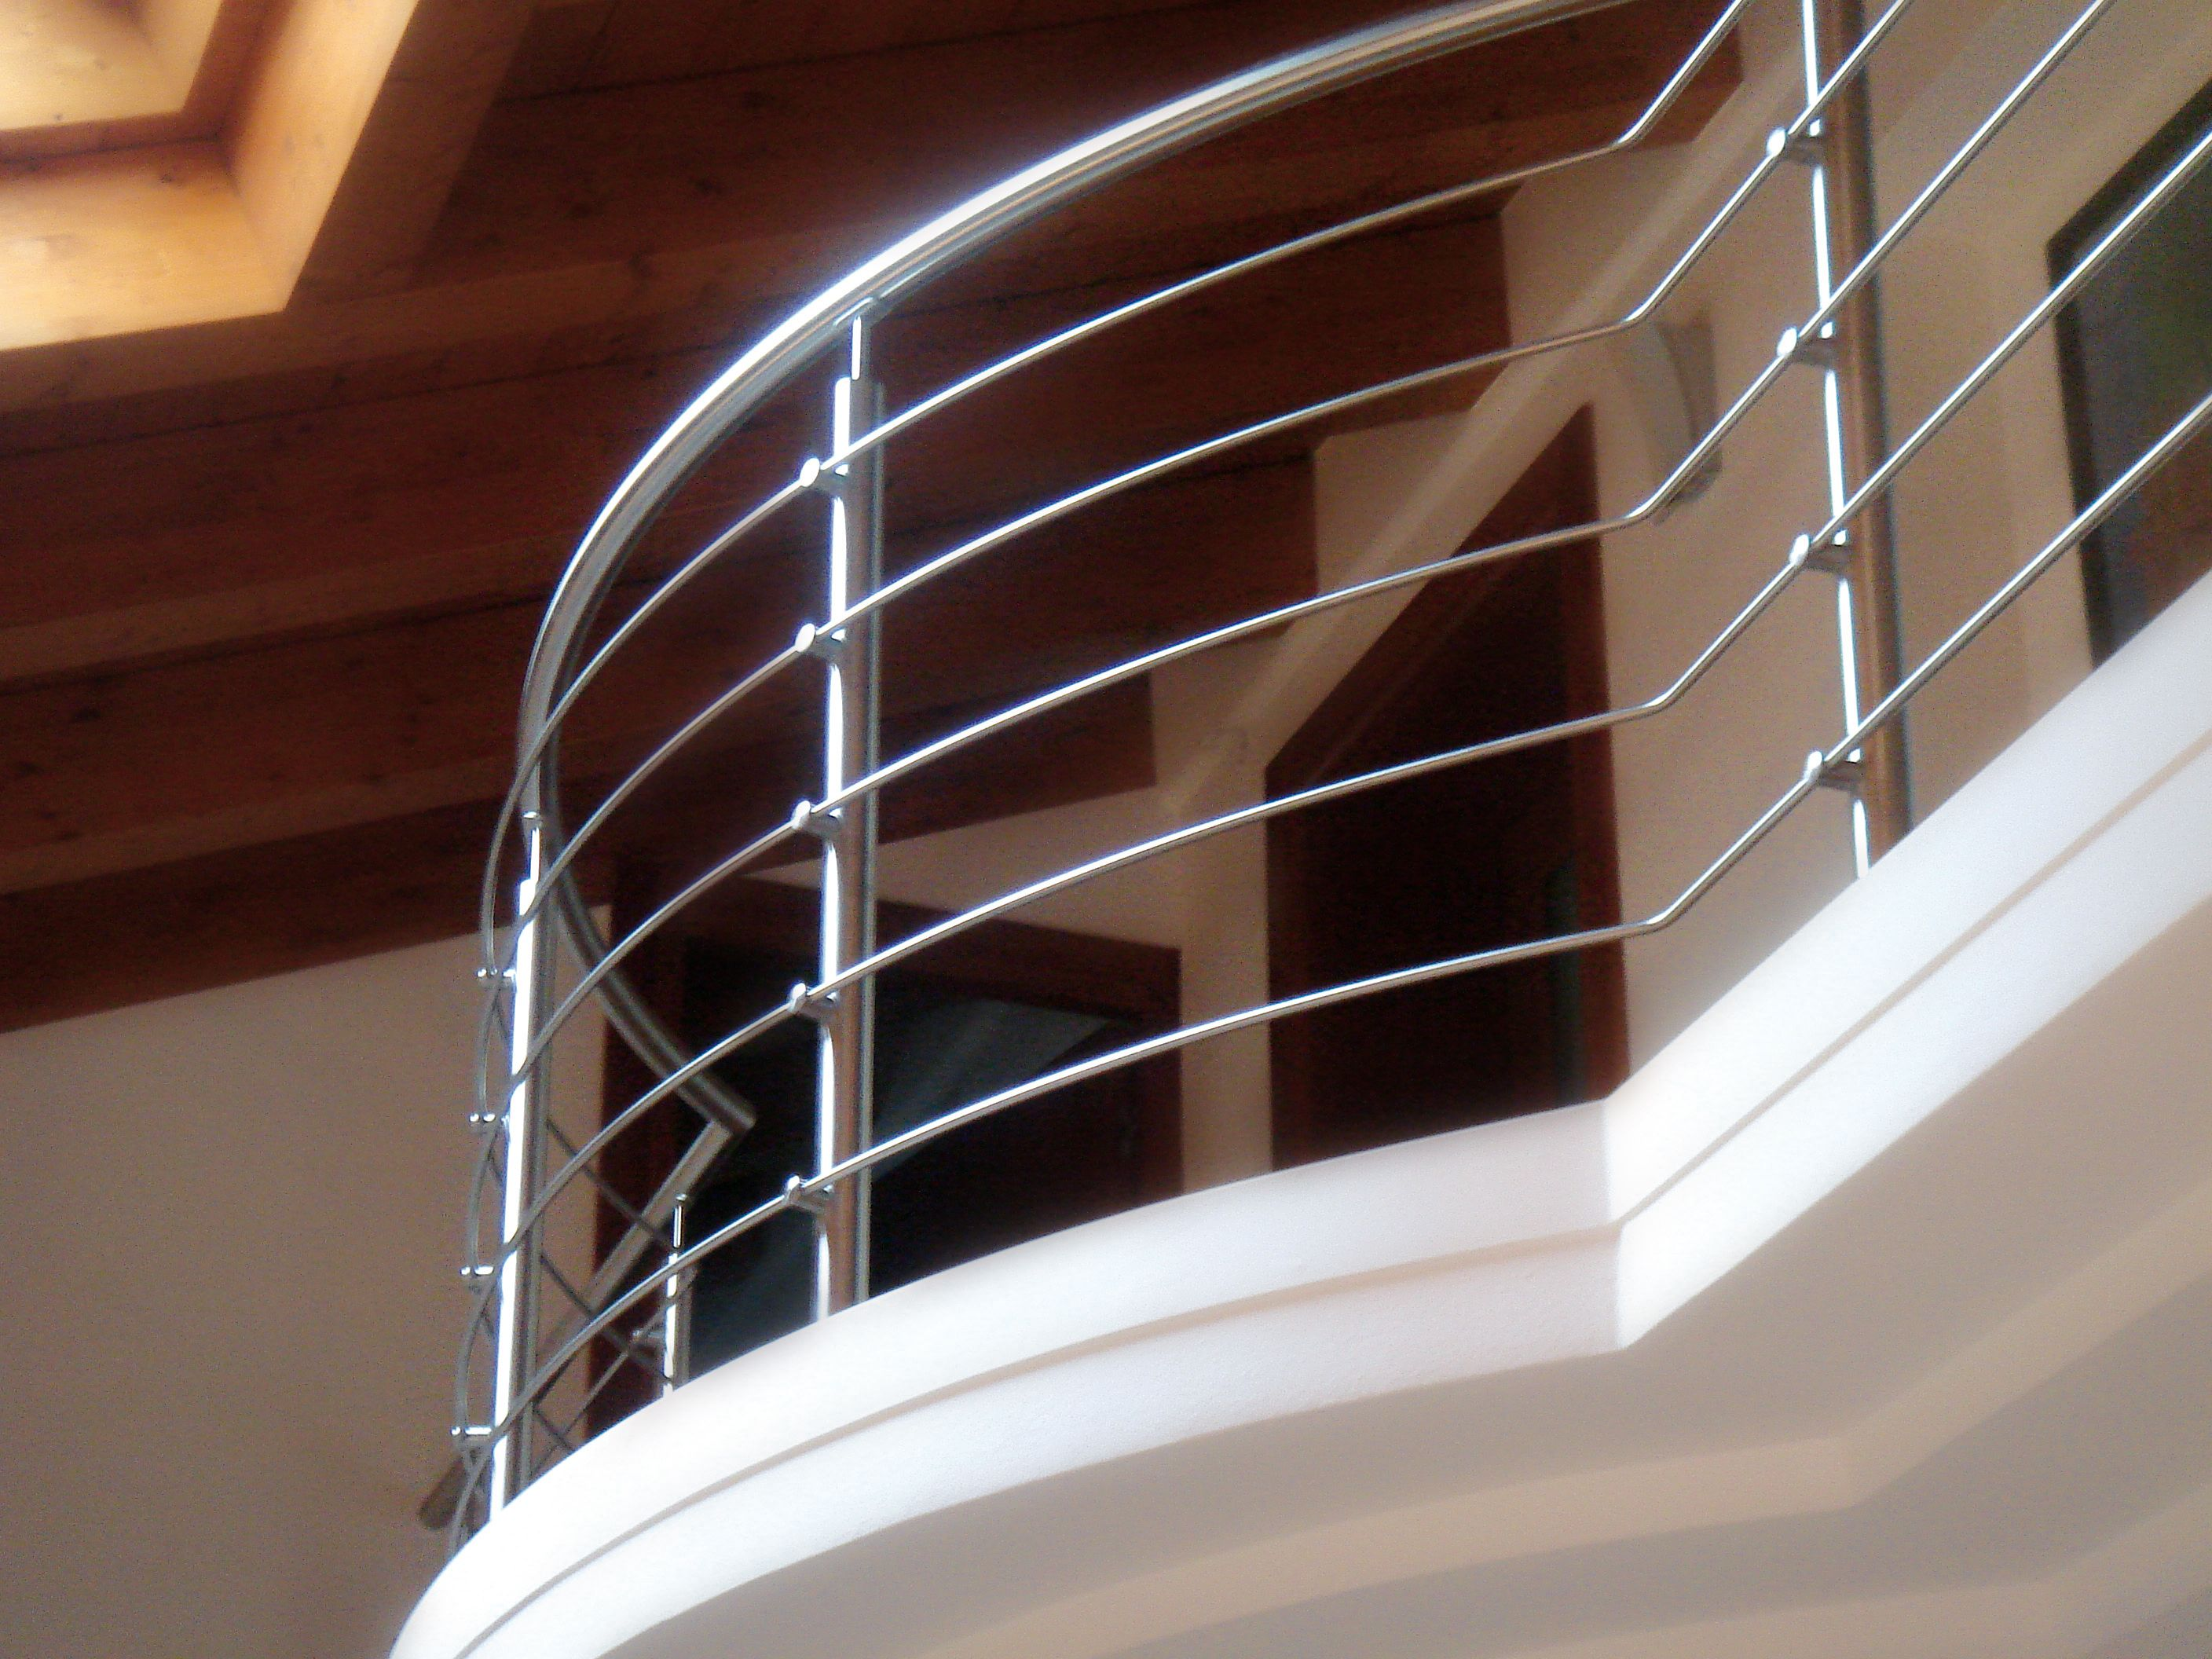 Our Stainless Round Bar Makes An Excellent Balcony Rail Steel Stairs Stainless Steel Staircase Steel Gate Design